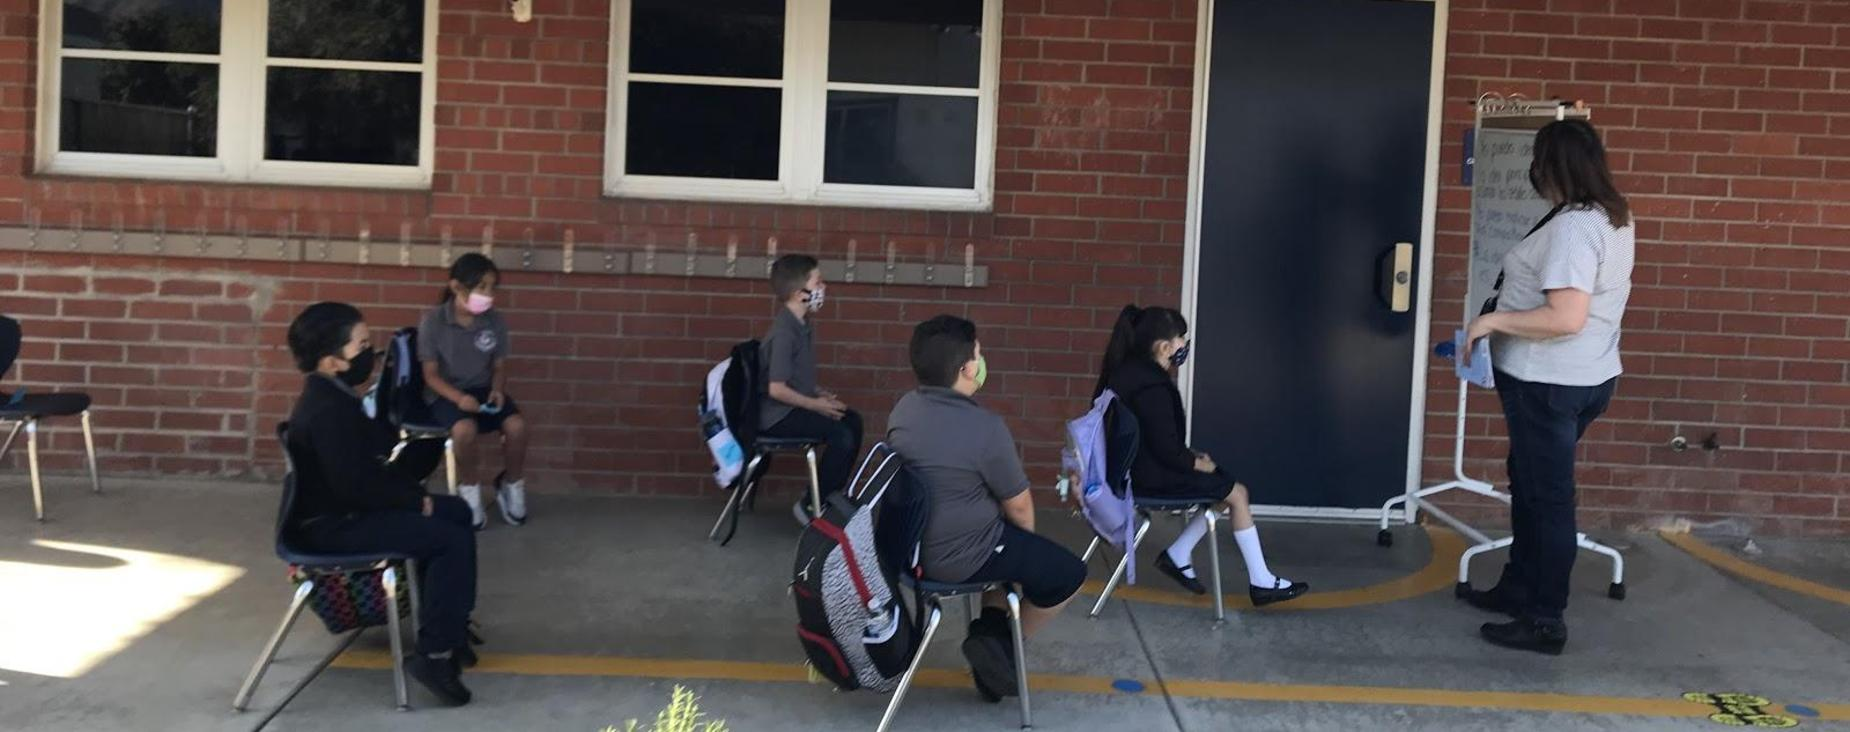 Teacher outside with students